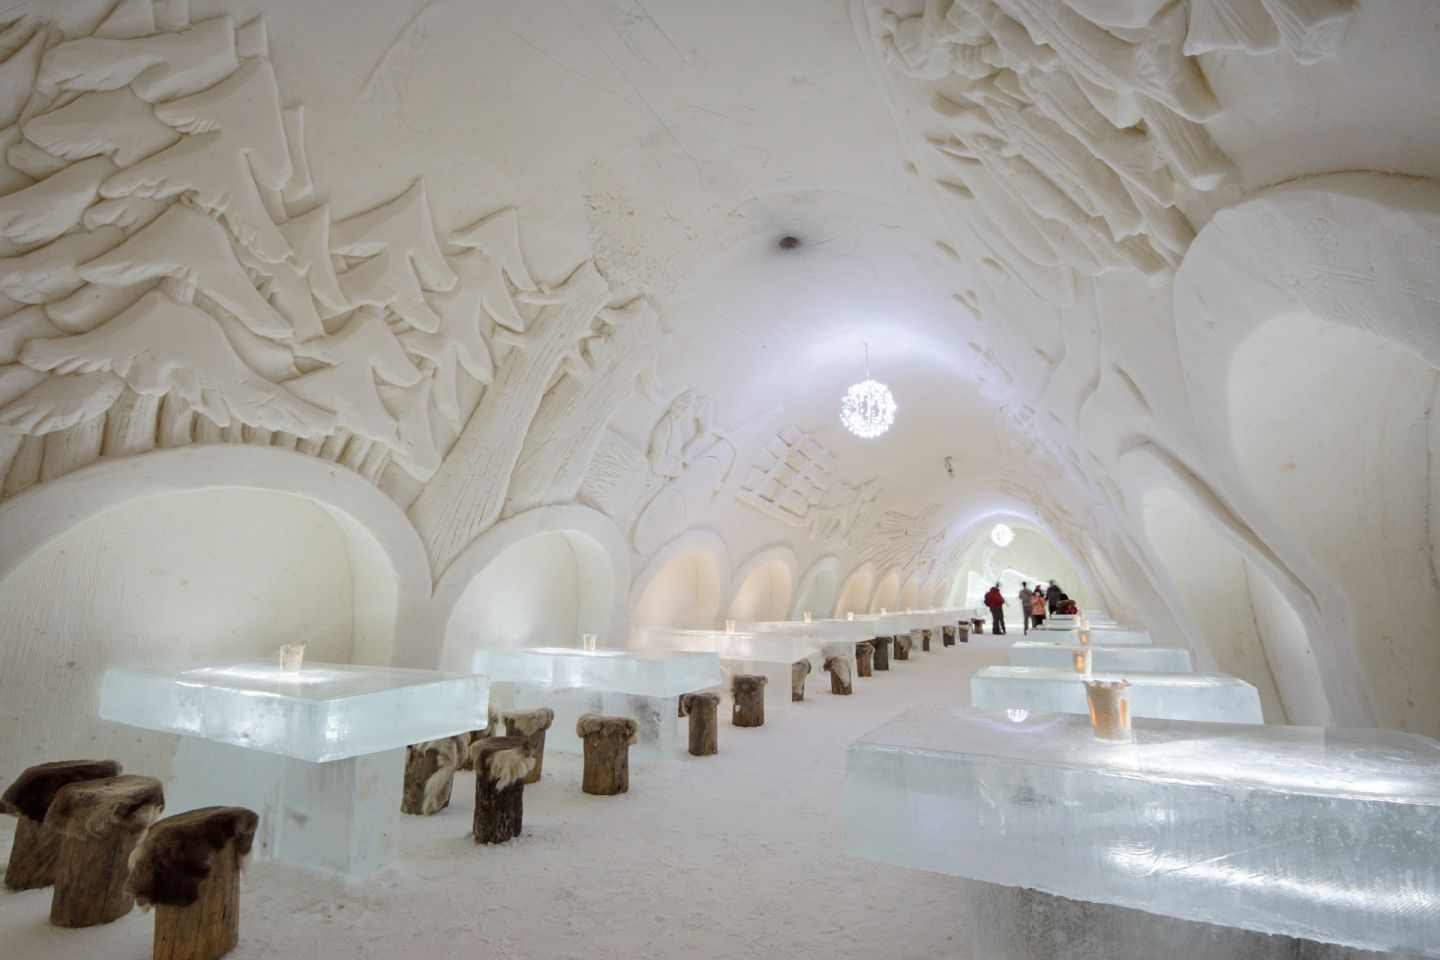 SnowRestaurant in the Kemi SnowCastle in Finnish Lapland